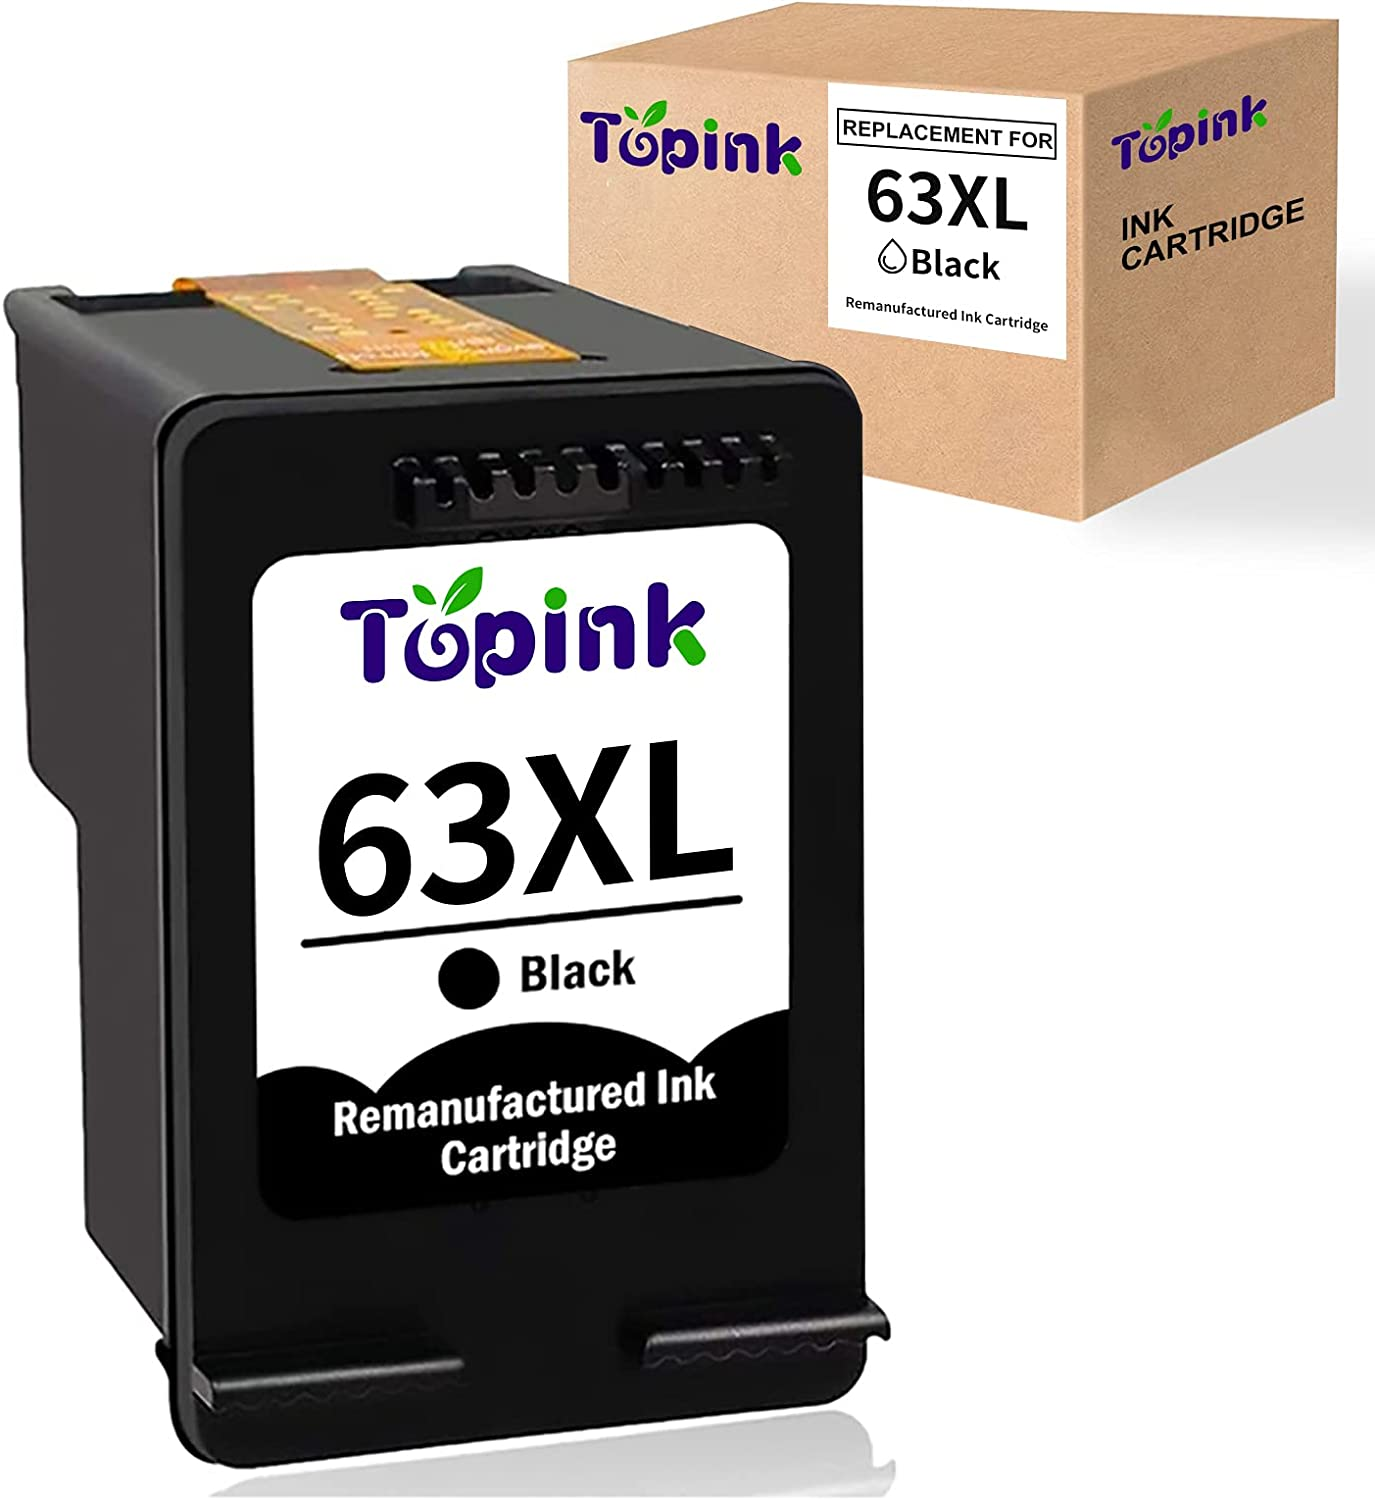 Topink Remanufactured Ink Cartridge Replacement for HP f6u62a 63XL 63 XL Black Ink Cartridge to use with HP OfficeJet 3830 Envy 4520 4512 Officejet 4650 5255 Deskjet 1112 3634 3639 3632 Printer